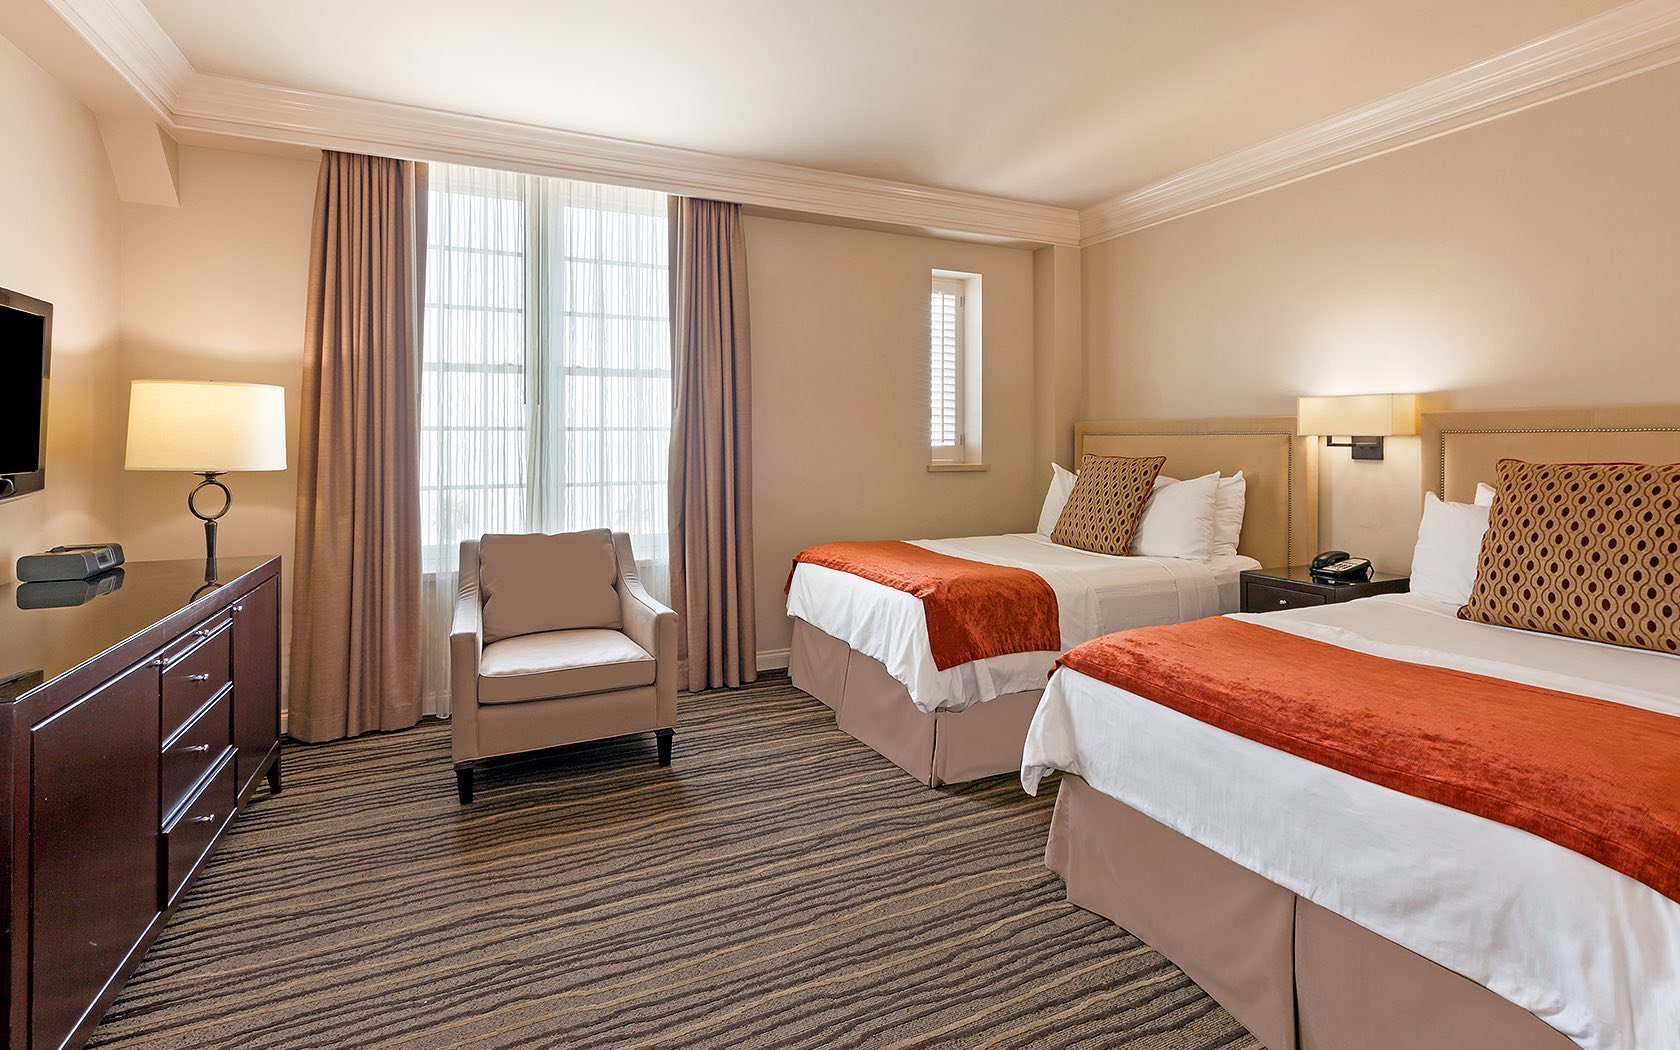 Hotel Rooms in Galveston | Book Now | Hotel Galvez & Spa®